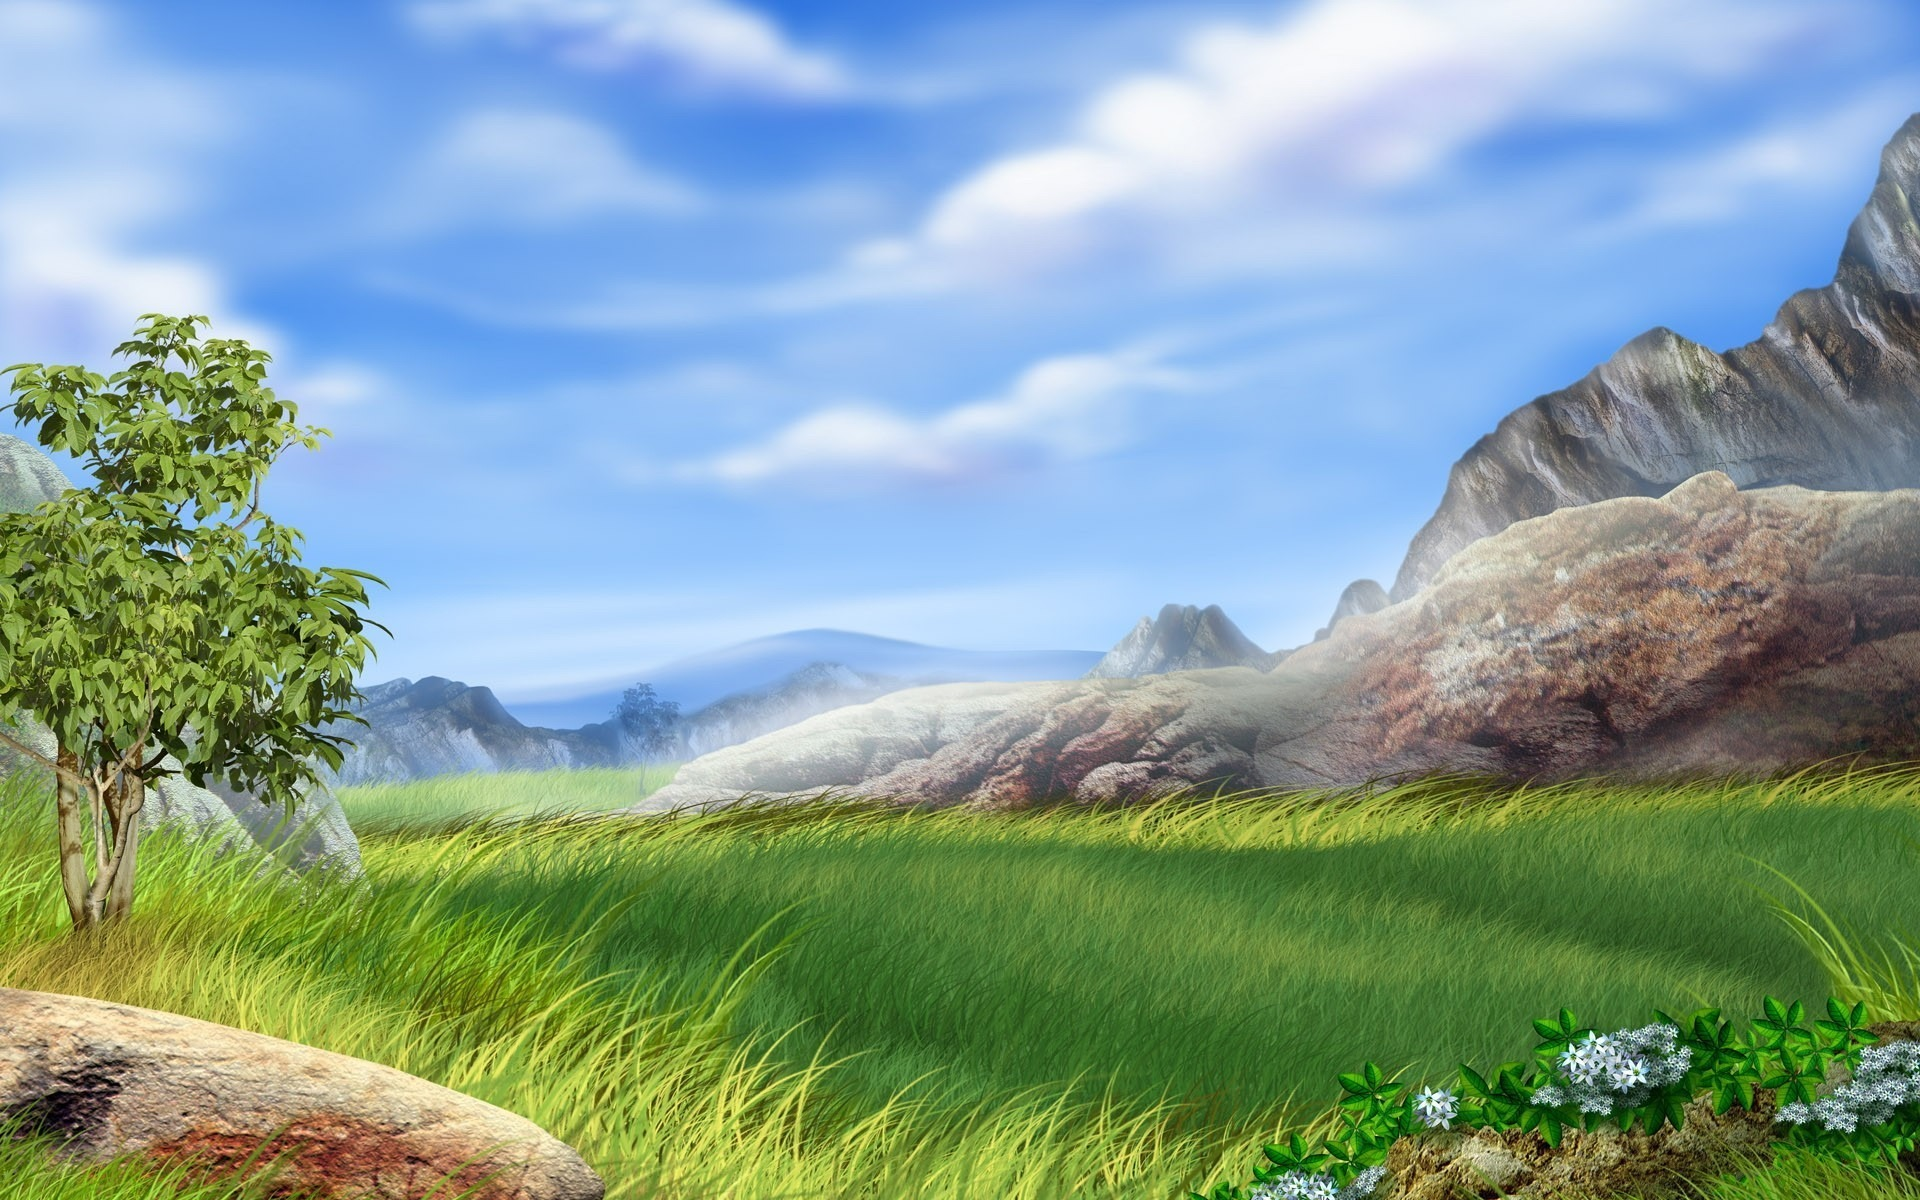 Wallpaperspoints Nature 3d PC Wallpaper Full HD 1920x1200